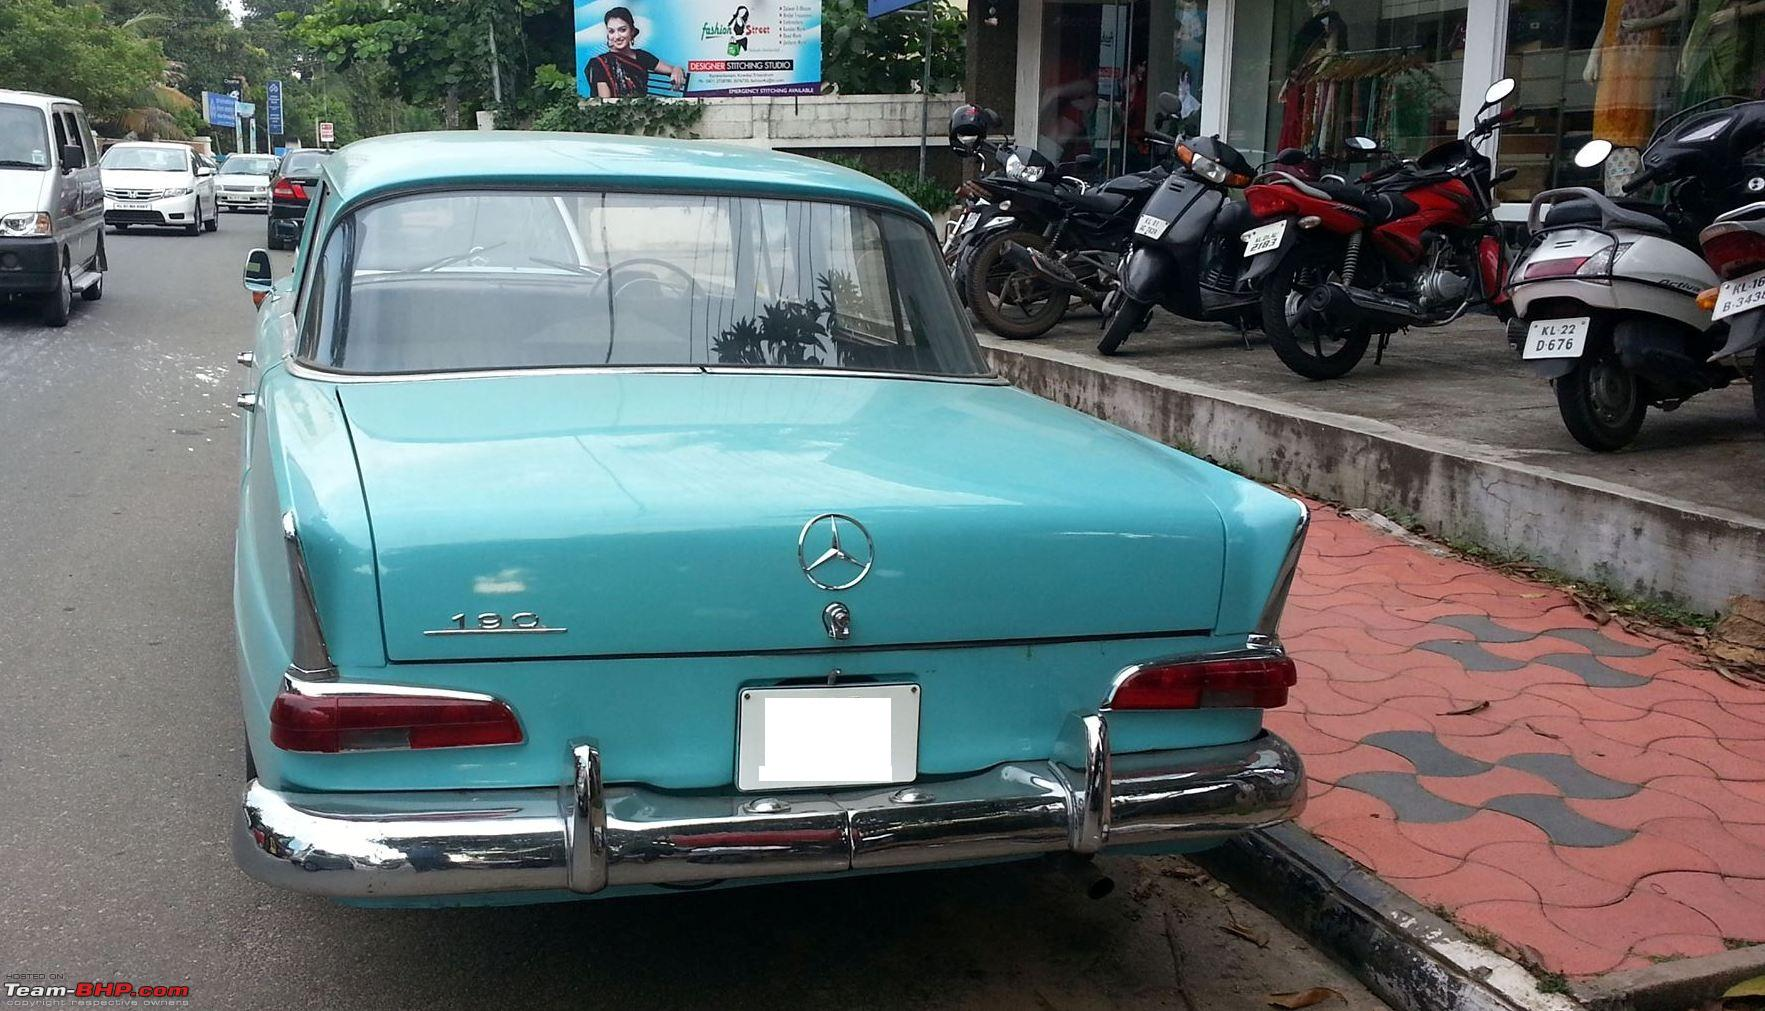 All Cars For Sale In Hyderabad Olx: Vintage & Classic Mercedes Benz Cars In India